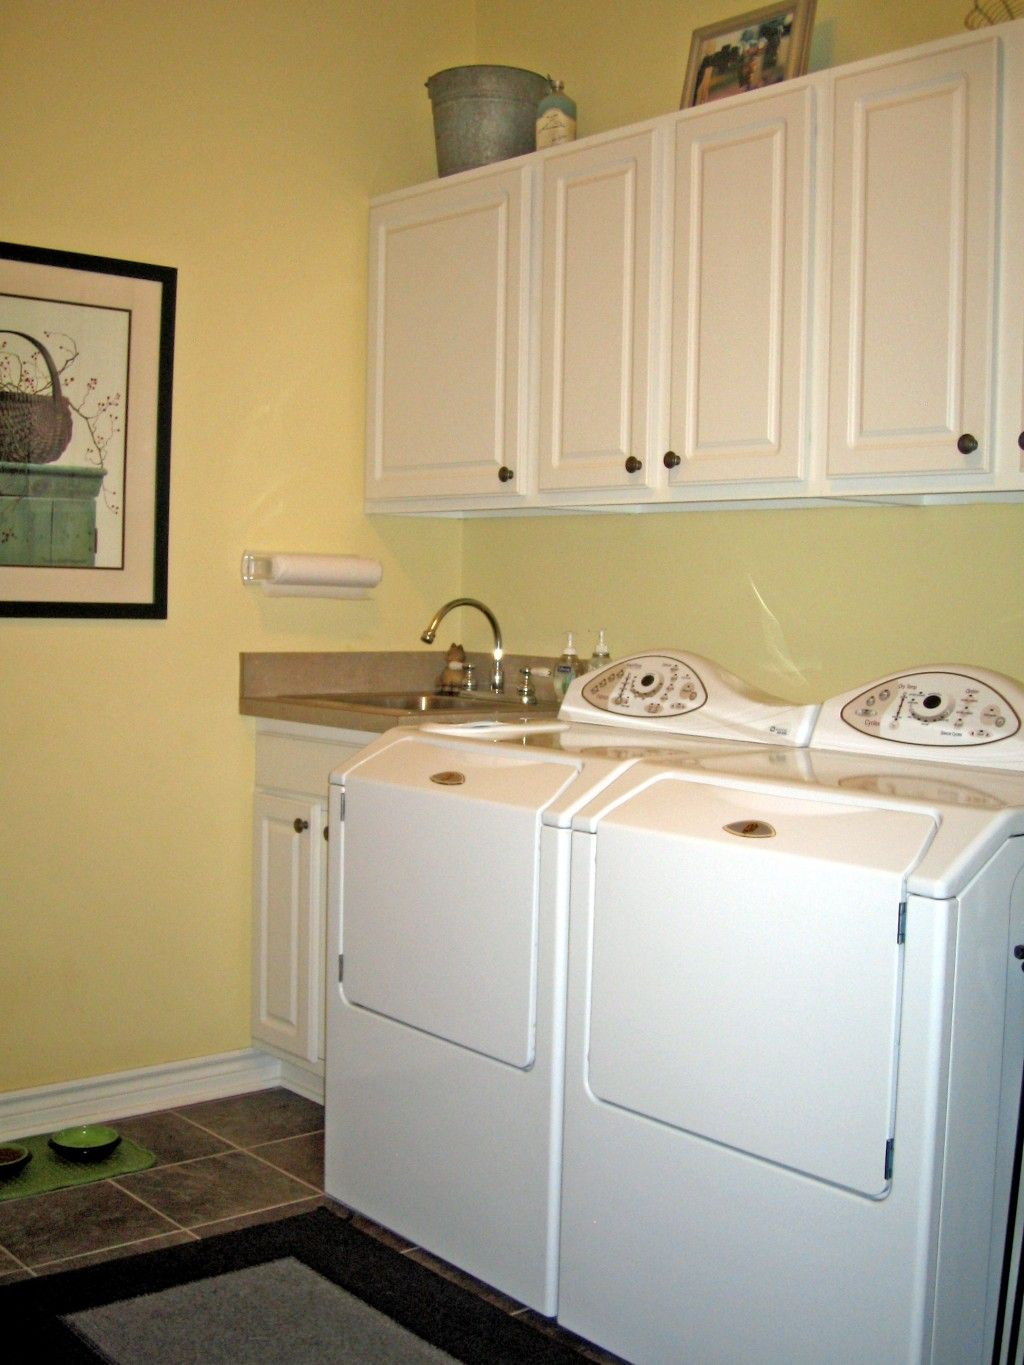 20 Beautiful Designs for Small Laundry Rooms on Small Laundry Room Cabinets  id=64297